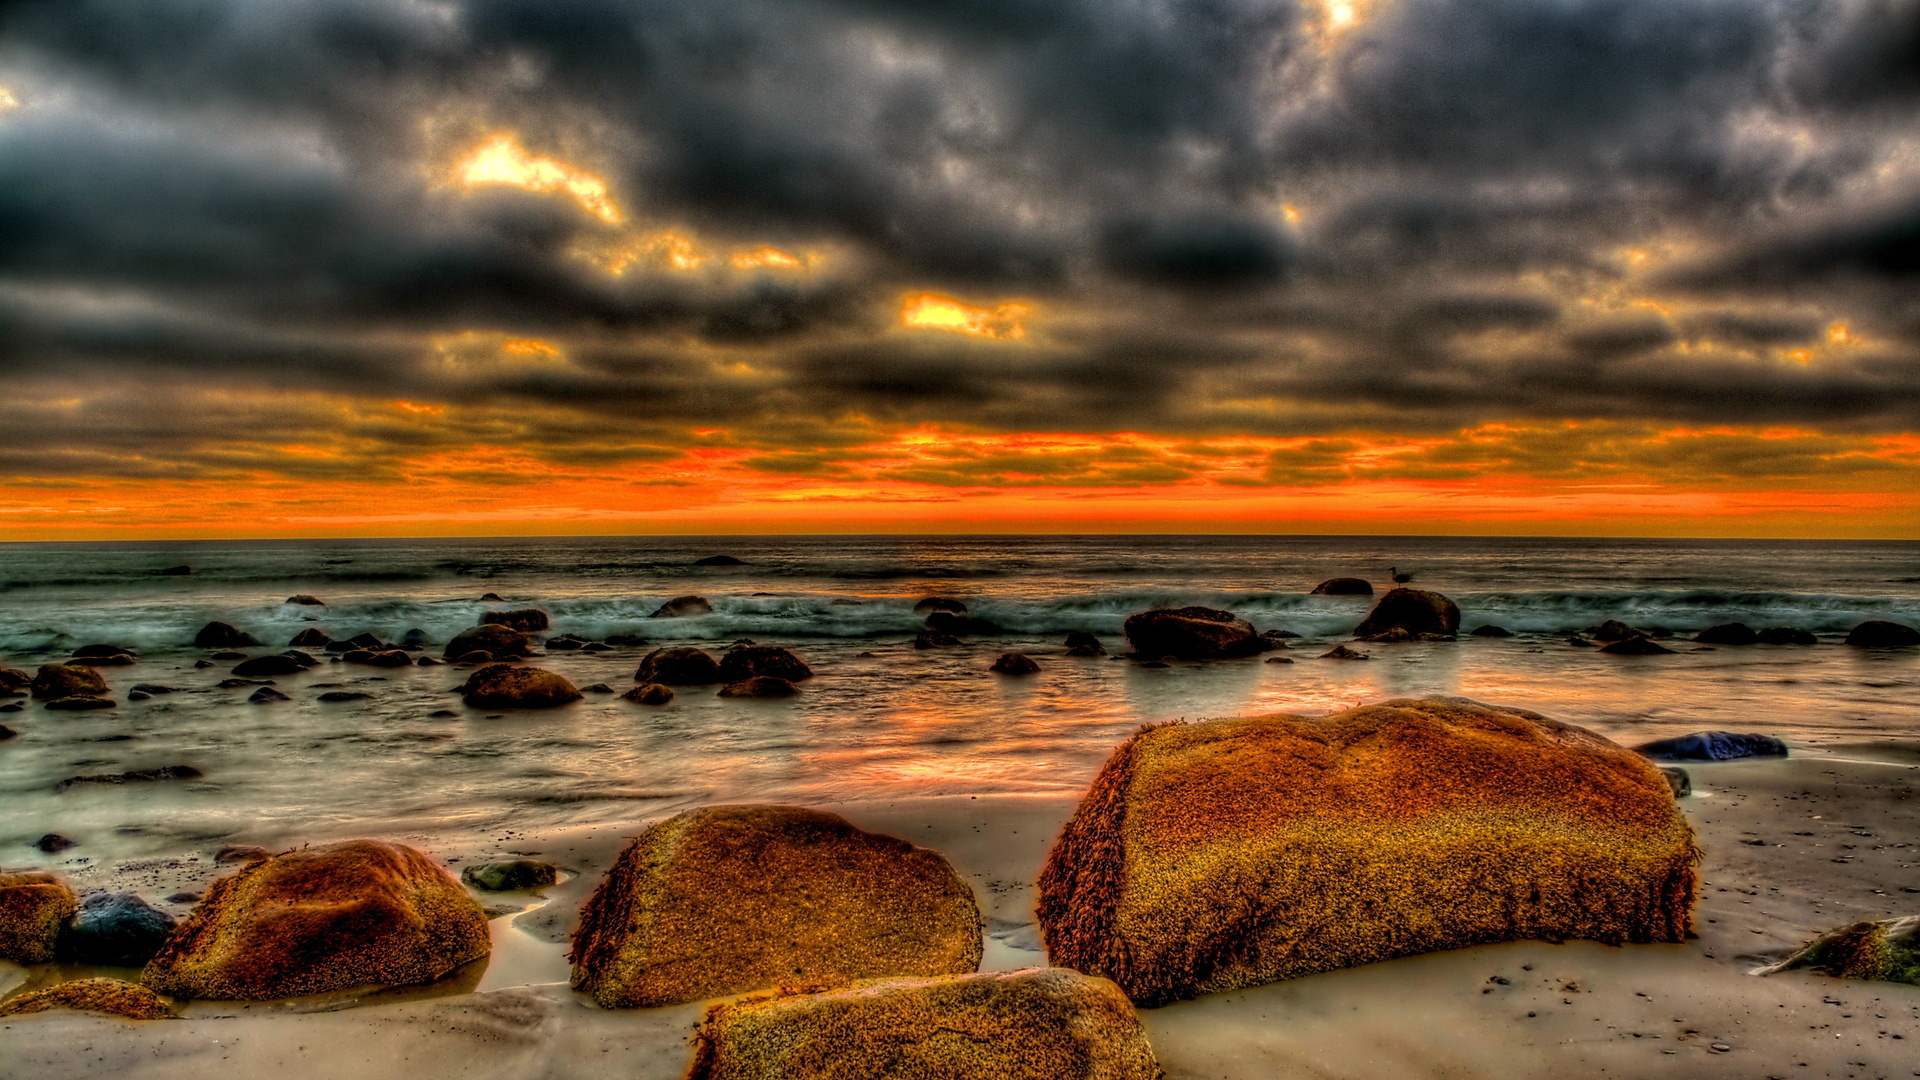 Beautiful Beach Strewn With Rocks At Sunset Hdr Hd Desktop Background